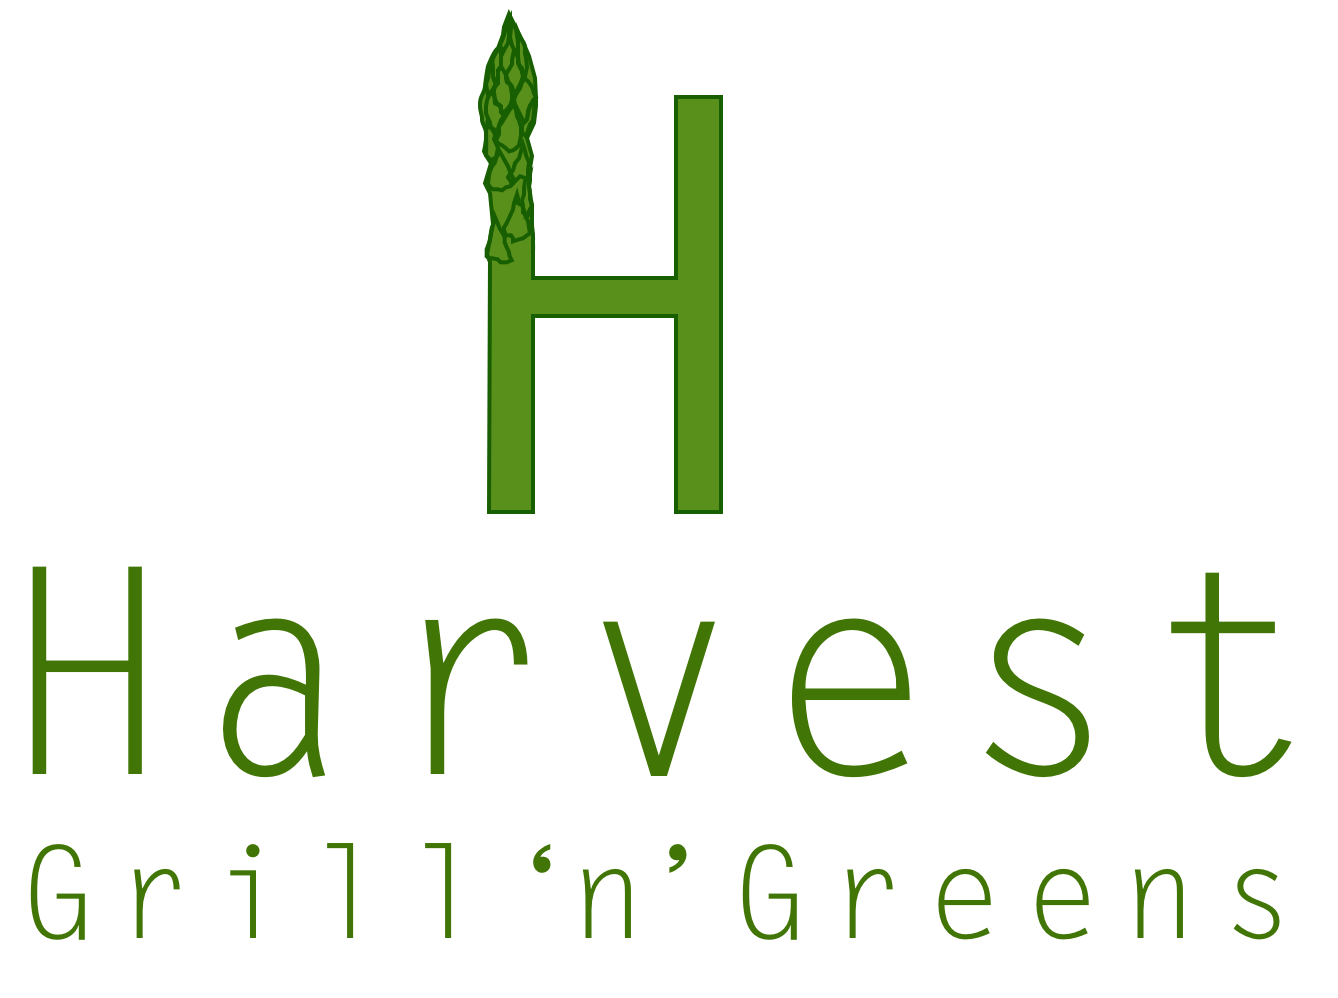 Harvest Grill 'n' Greens